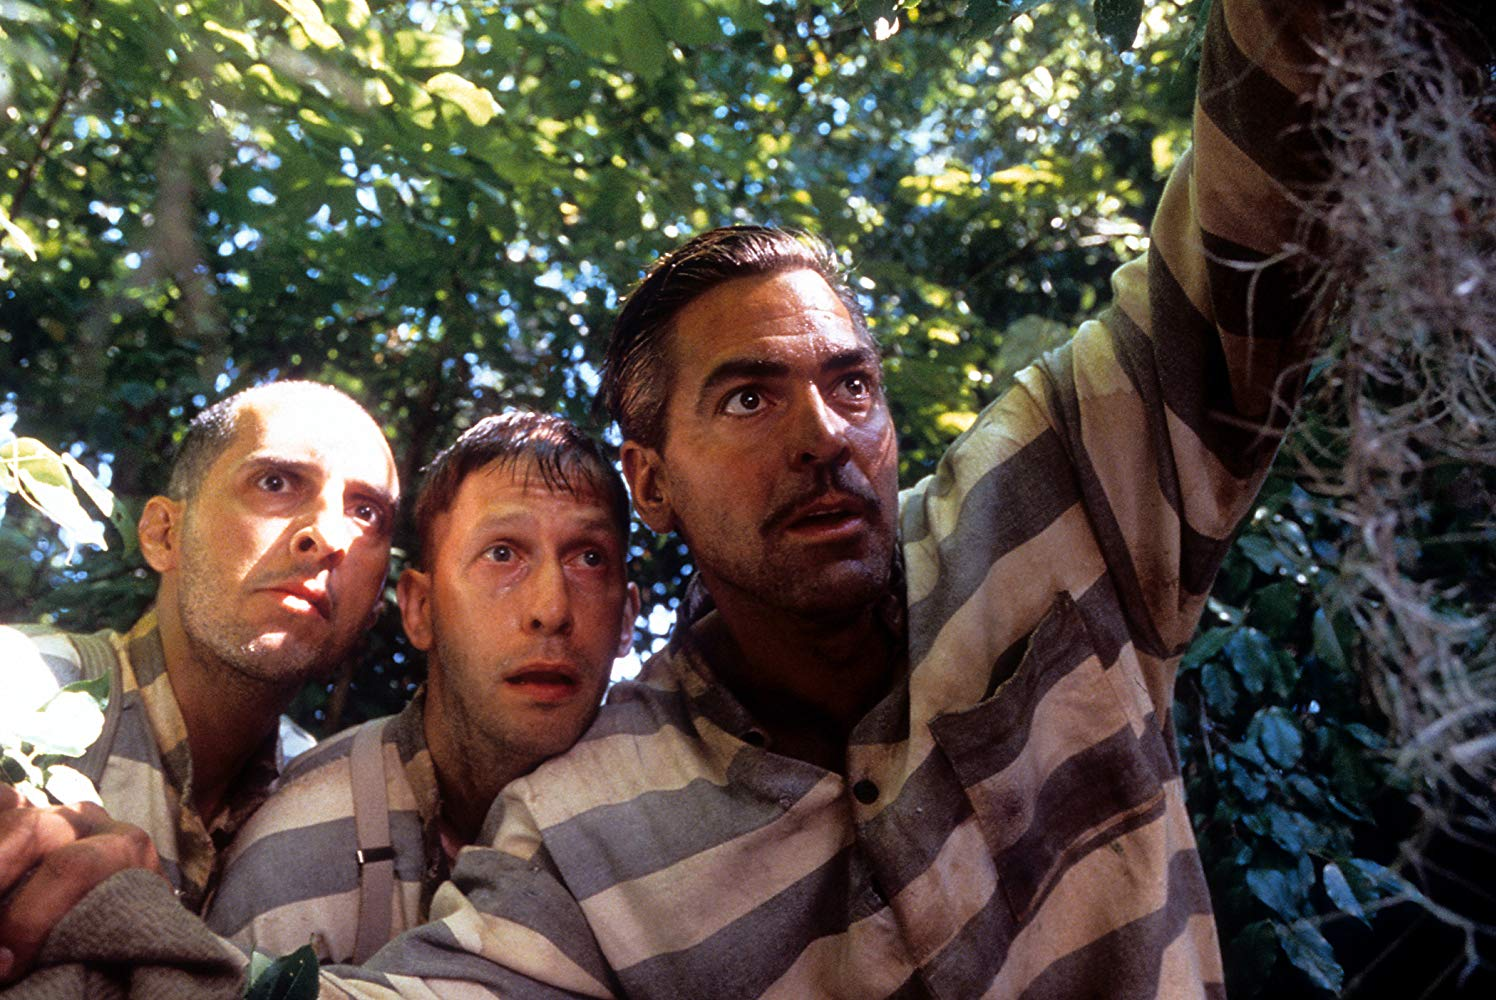 7. O Brother, Where Art Thou? (2000)